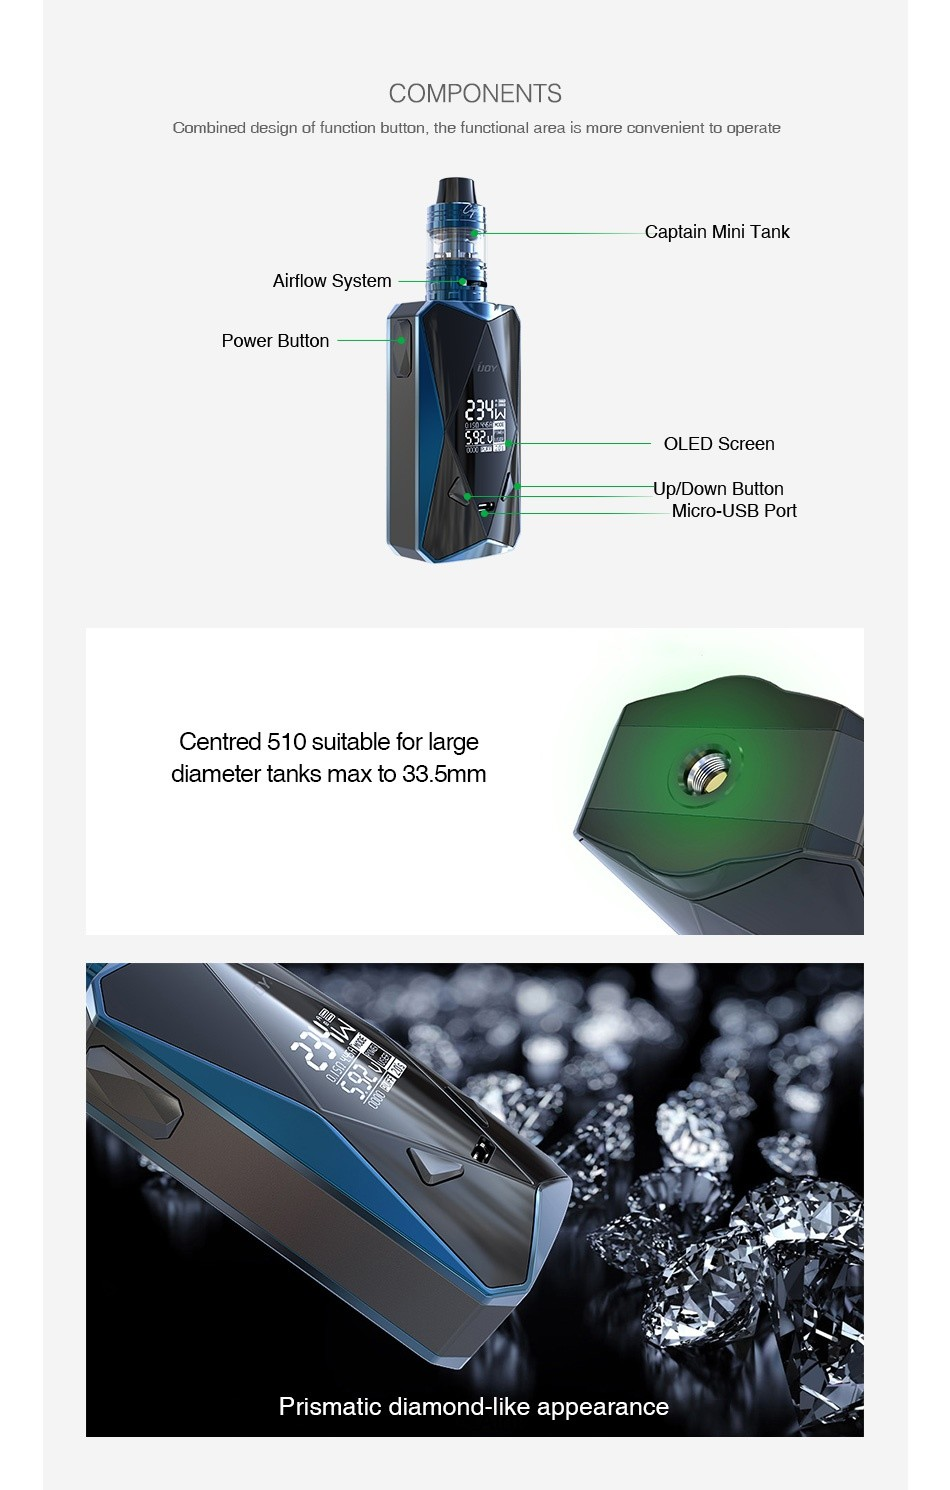 IJOY Diamond PD270 234W TC Kit with Captain Mini COMPONENTS Combined design of function button  the functional area is more convenient to operate Captain mini Tank Airflow System Power button LED Scree Up Down Button Micro USB Port Centred 510 suitable for large diameter tanks max to 33  5mm Prismatic diamond like appearance